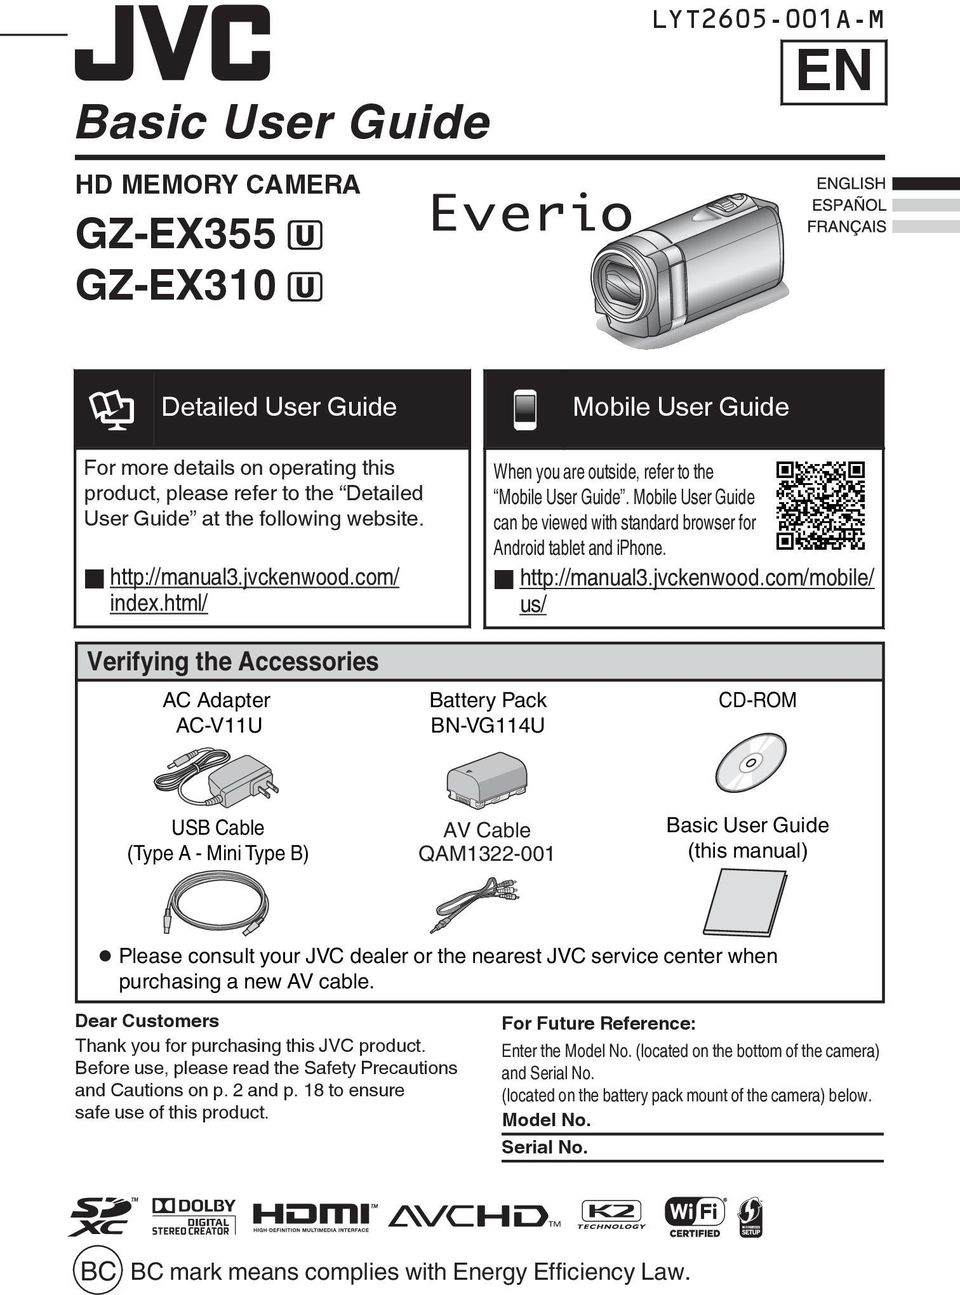 iphone o http://manual3jvckenwoodcom/mobile/ us/ Verifying Basic the User Accessories Guide(this manual) AC Adapter AC-V11U Battery Pack BN-VG114U CD-ROM USB Cable (Type A - Mini Type B) AV Cable